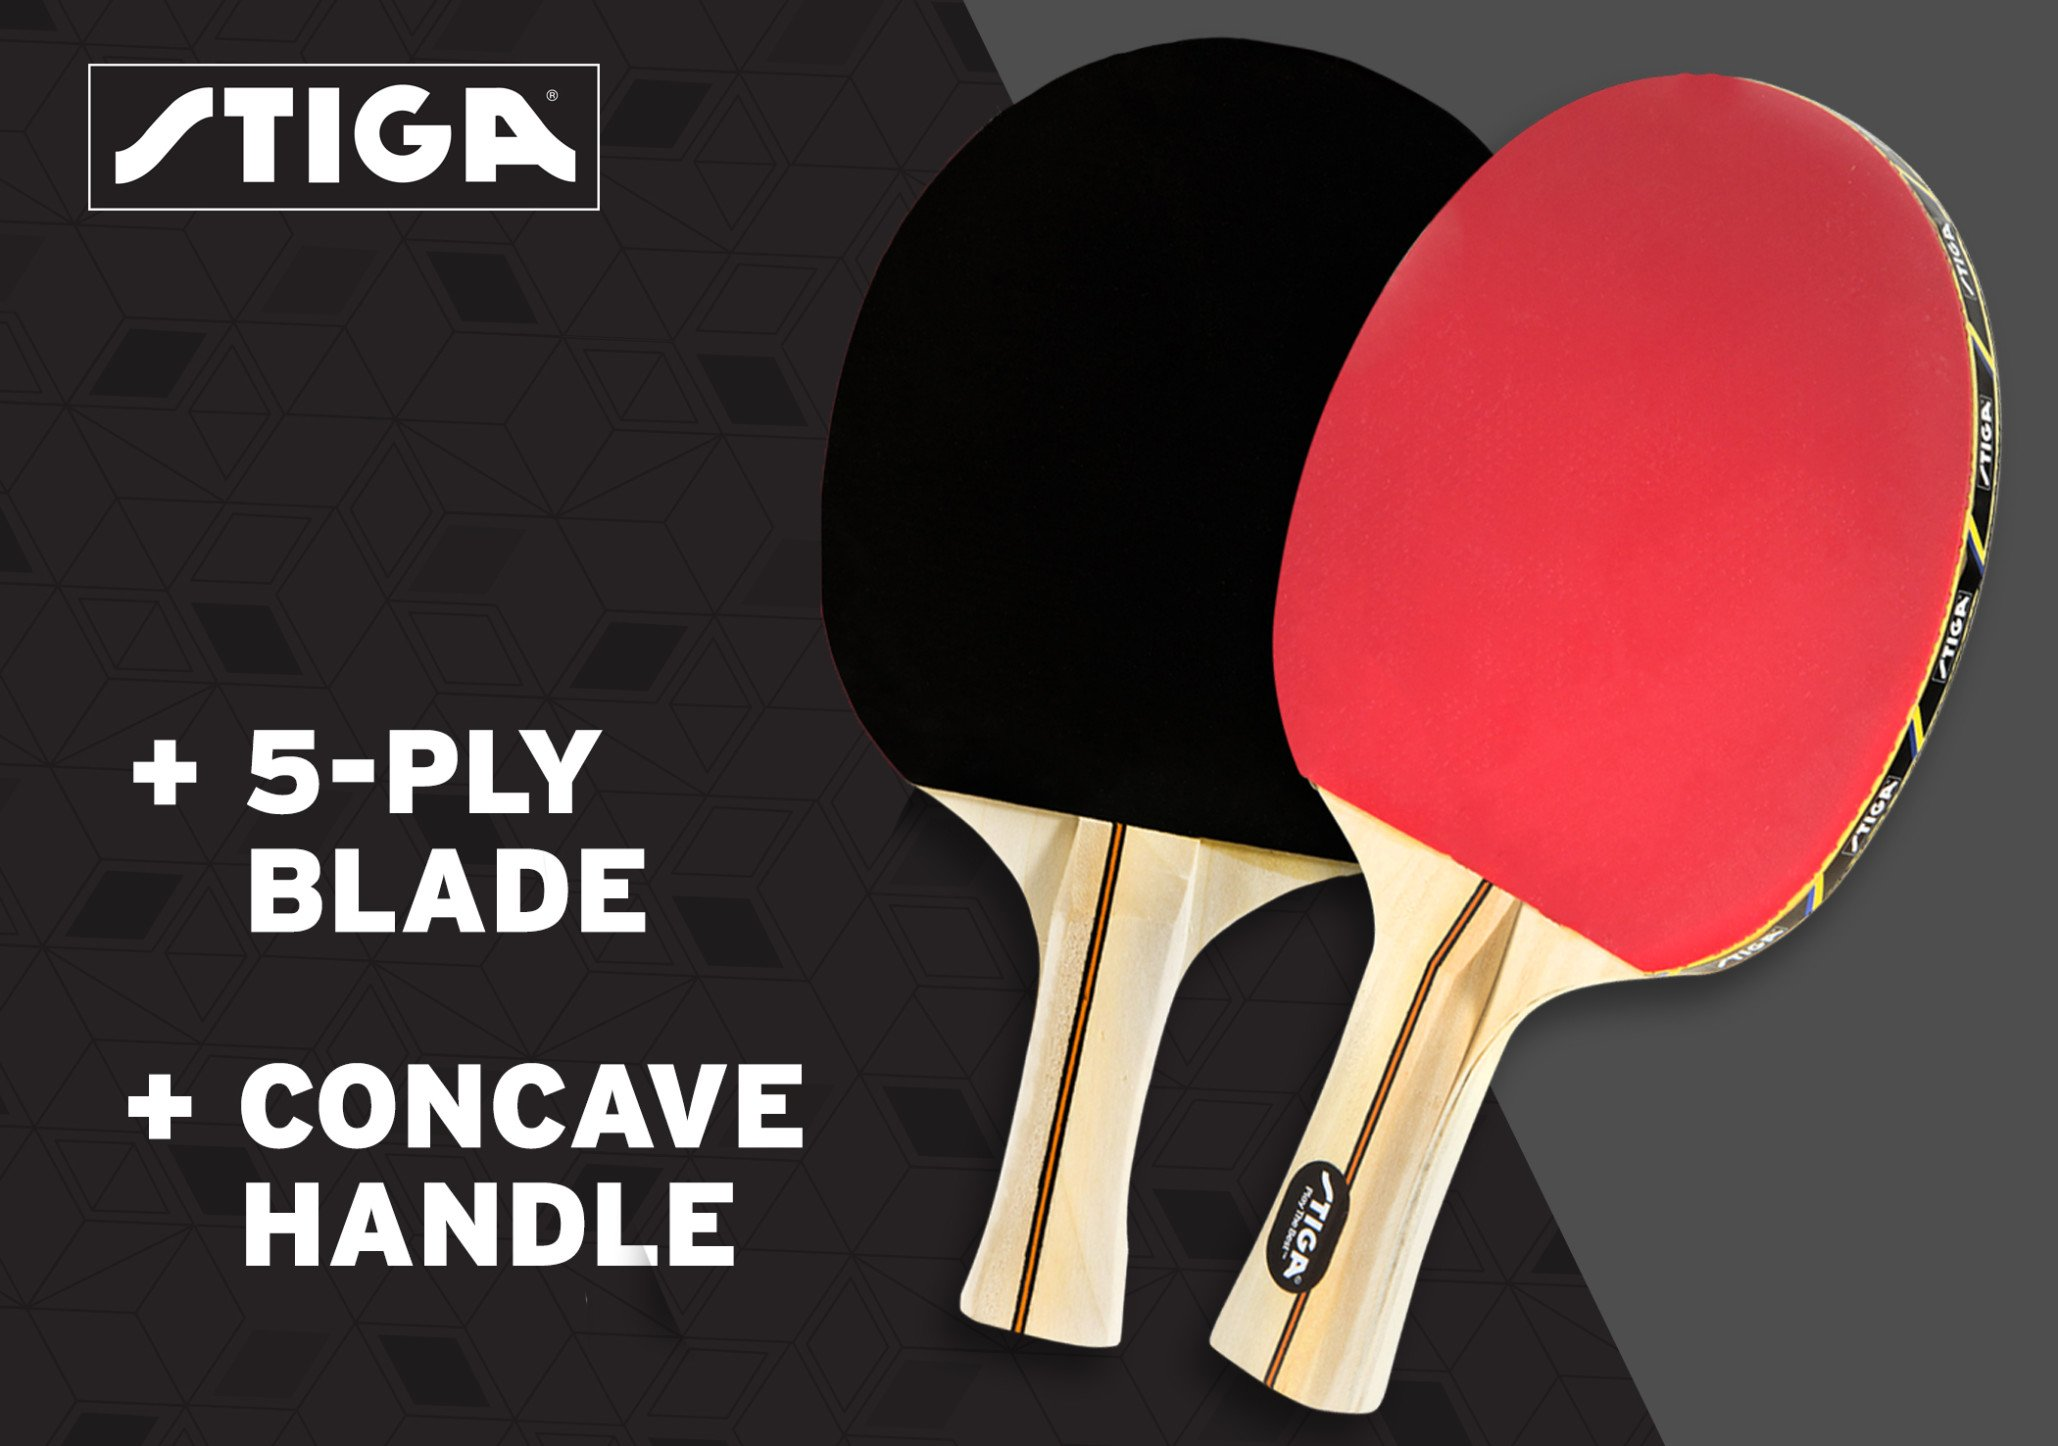 STIGA Performance 4-Player Table Tennis Racket Set with Inverted Rubber for Increased Ball Control and Added Spin by STIGA (Image #5)